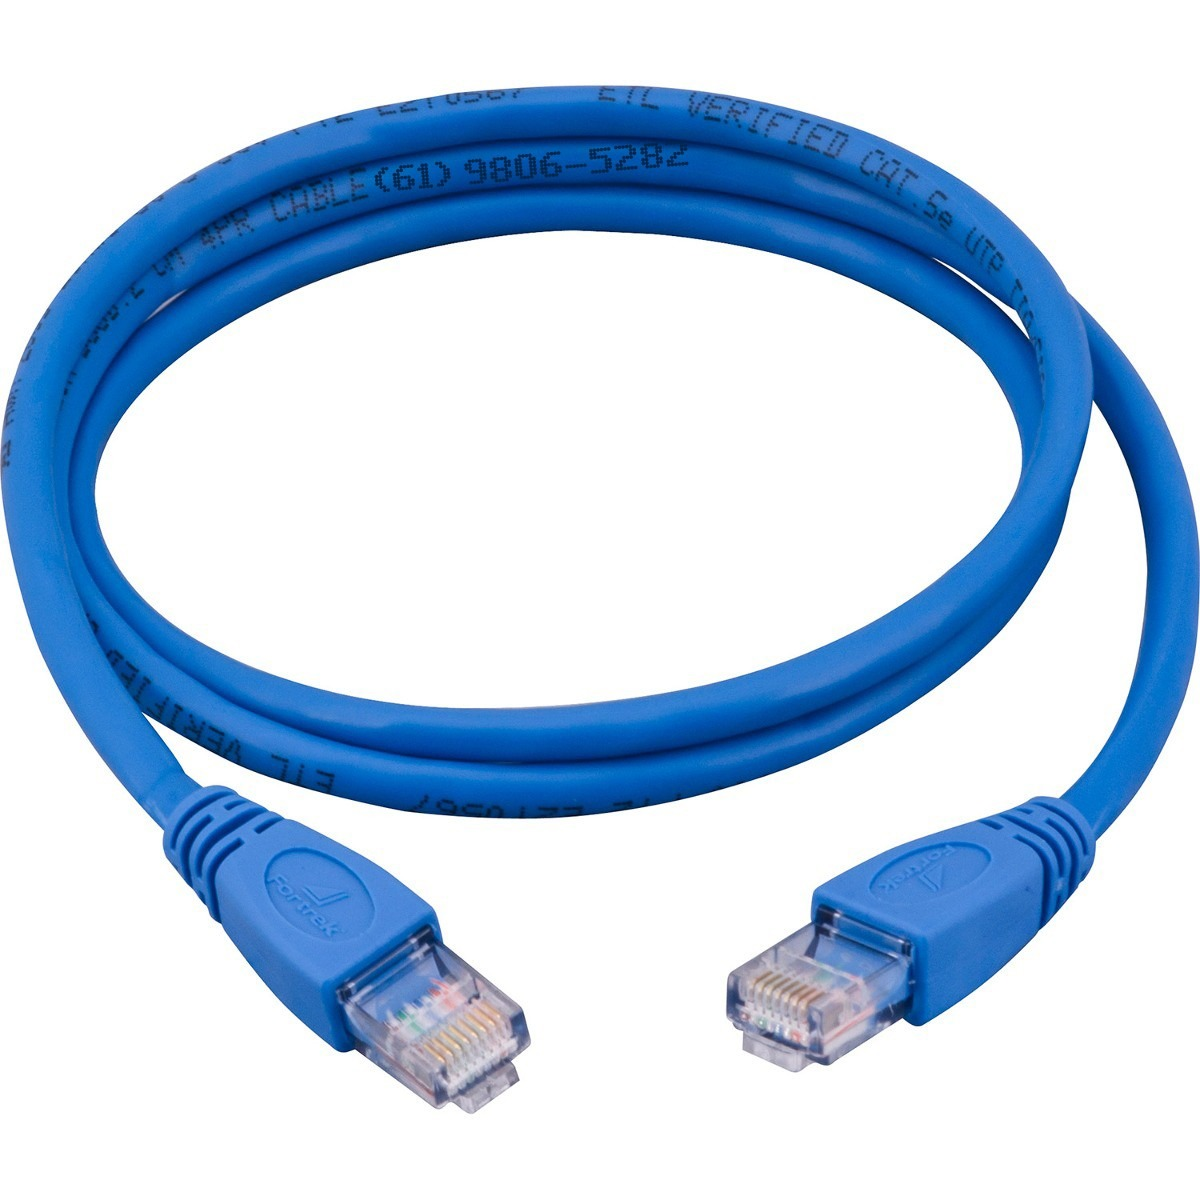 Rj45 Ether  10 100 Base T Norma 568 as well Inter router also Article furthermore Crimping Rj45 additionally Cat5. on cat5